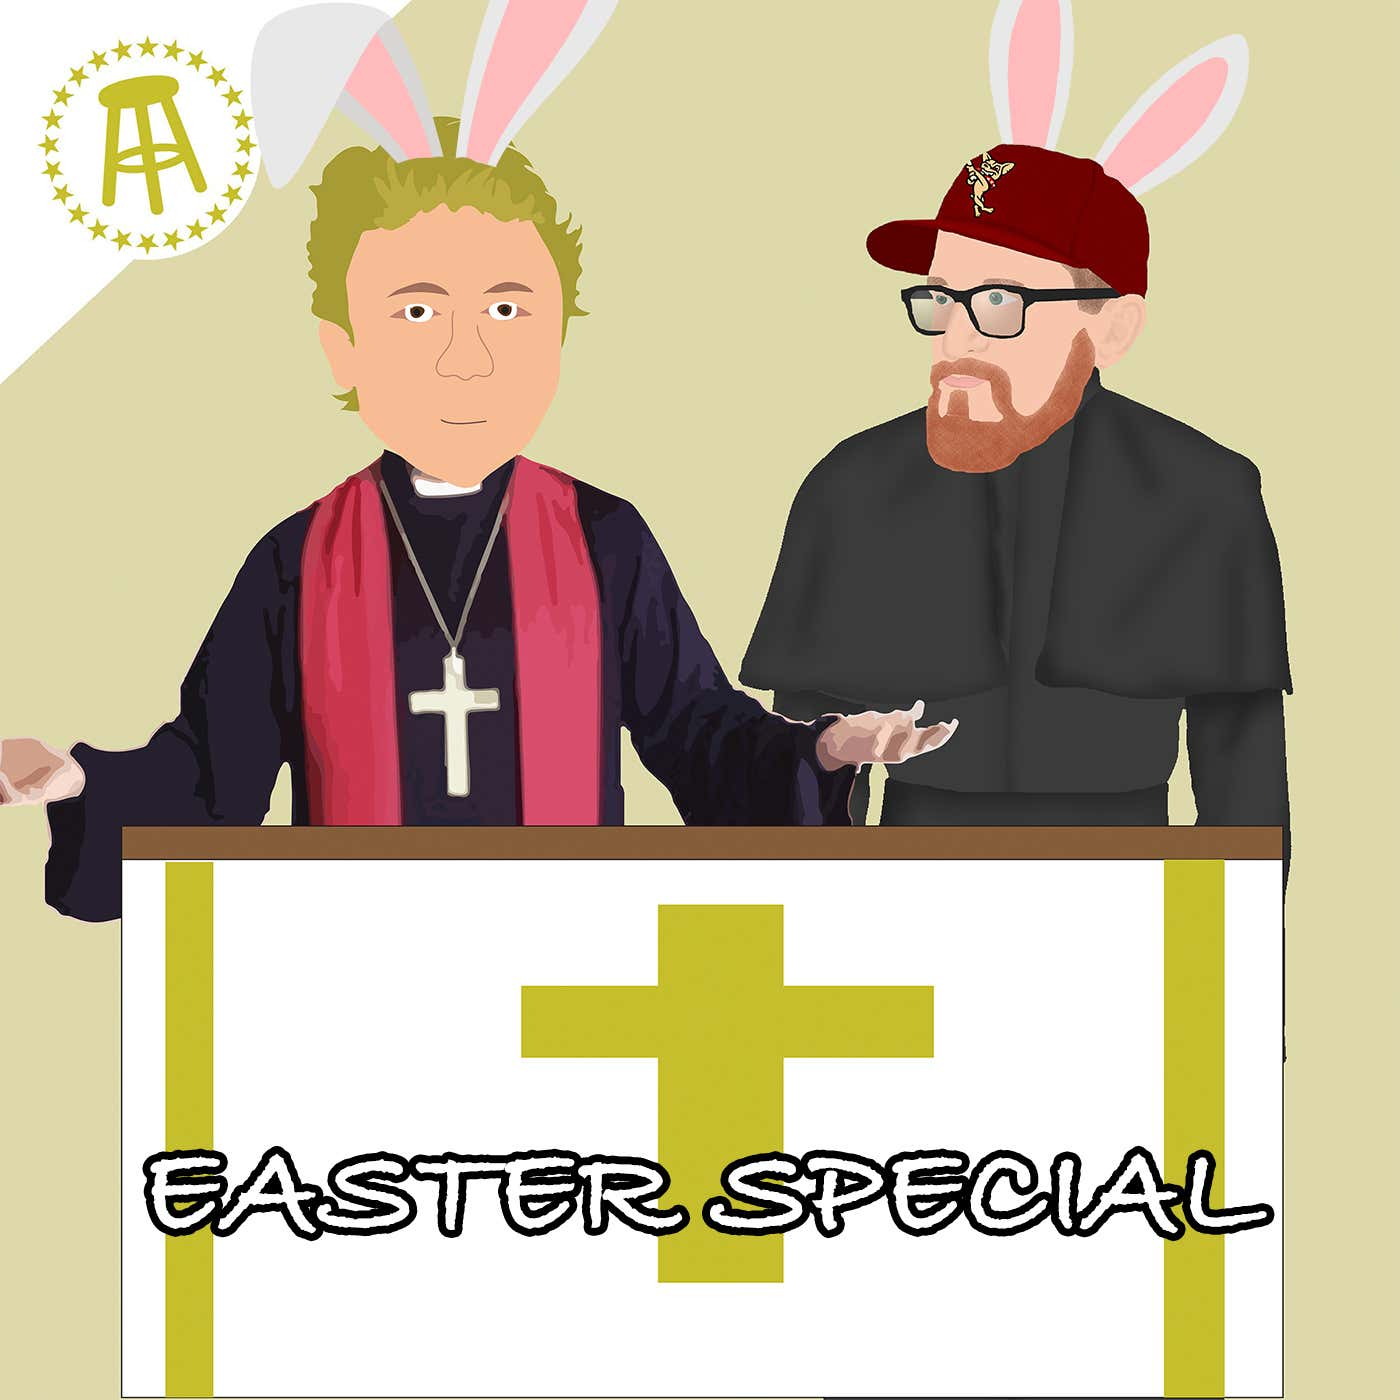 10. Easter Sunday Stories Get Dark REAL QUICK